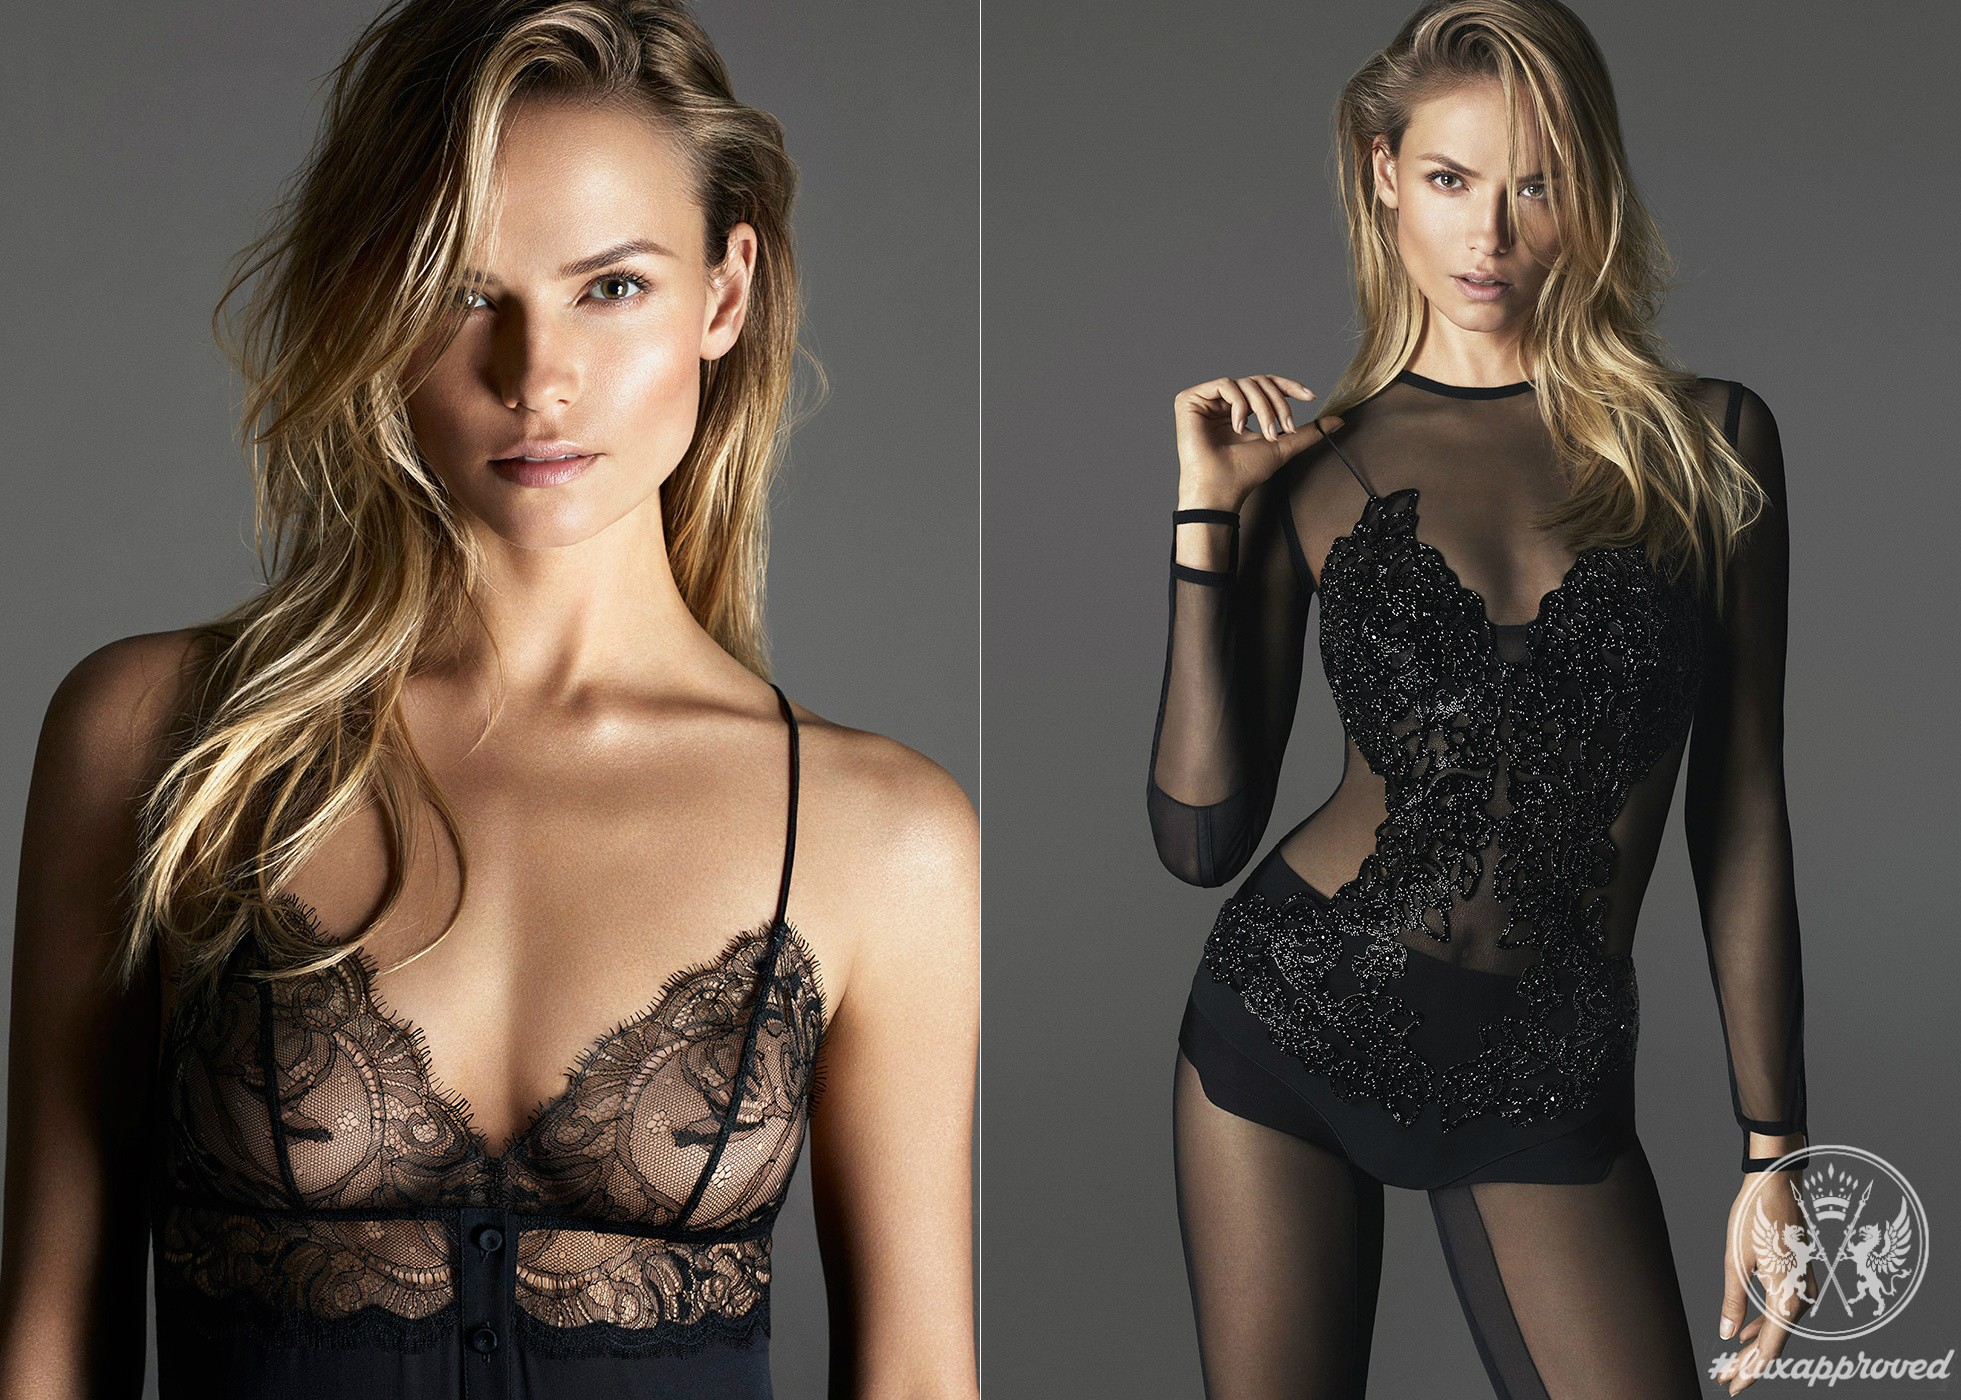 La Perla Extended Intimacy, Spring/Summer 2016 Campaign